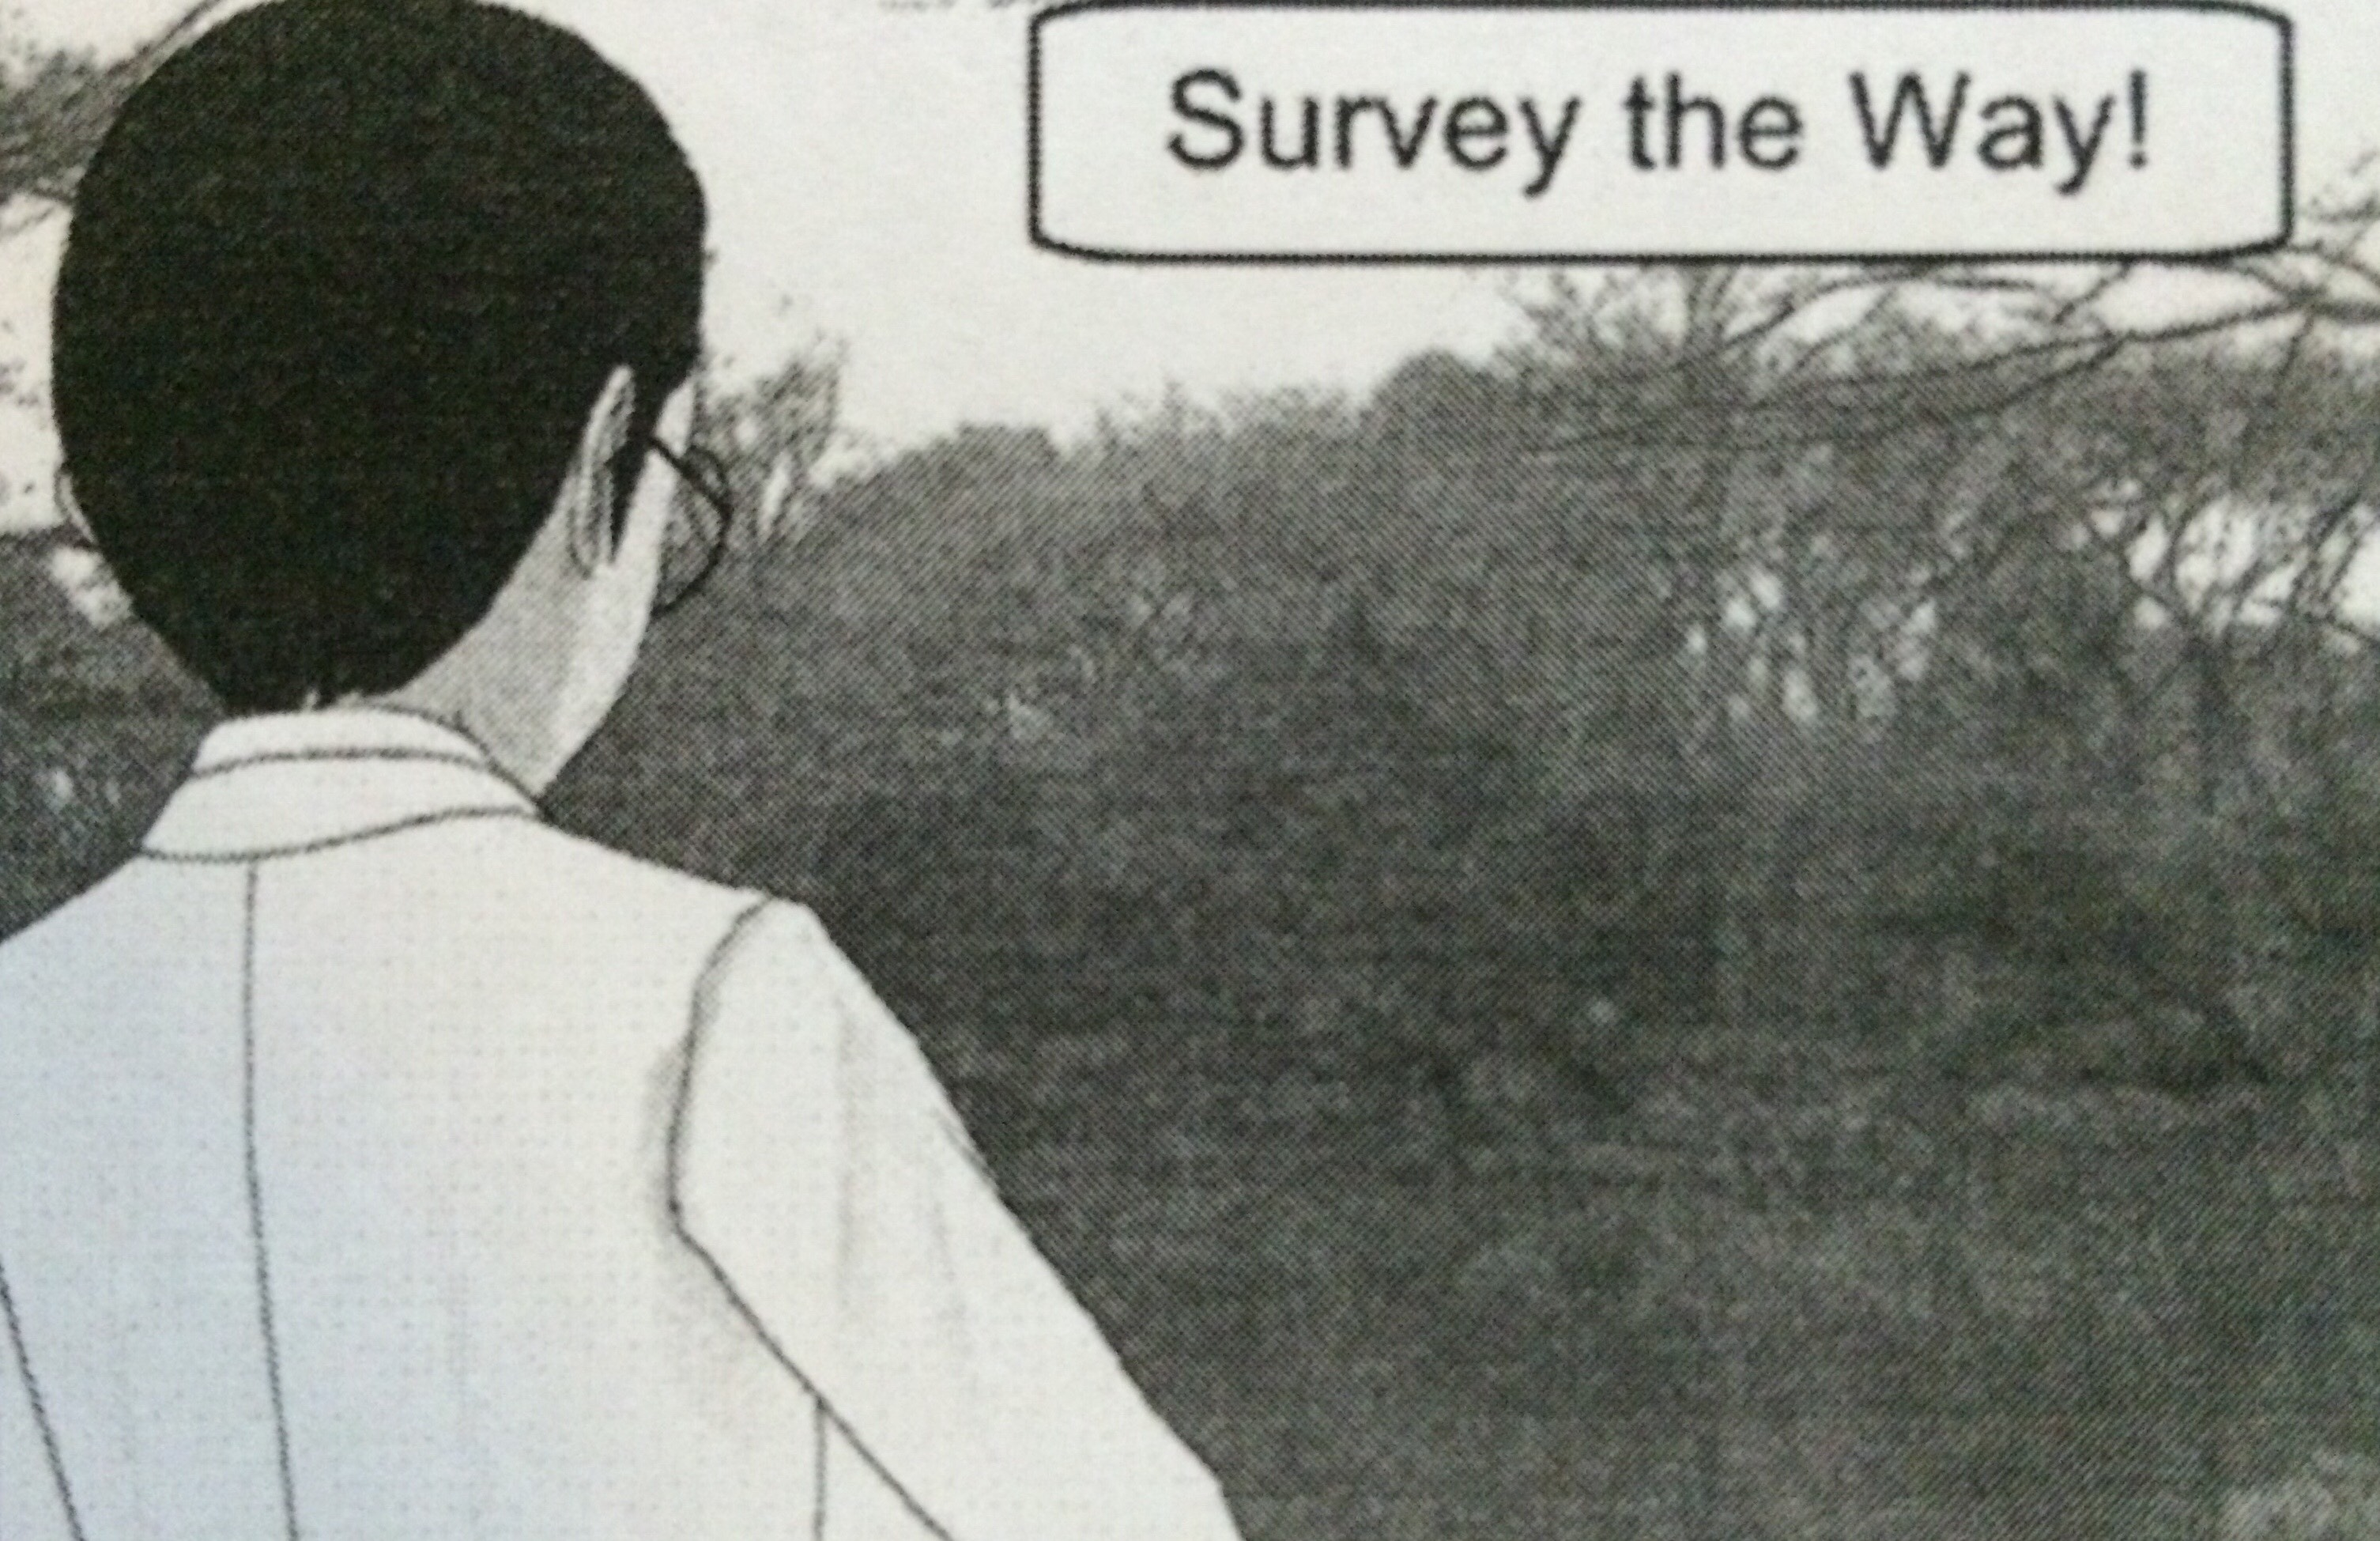 Picture of Survey the Route, Expect Others to Do the Same